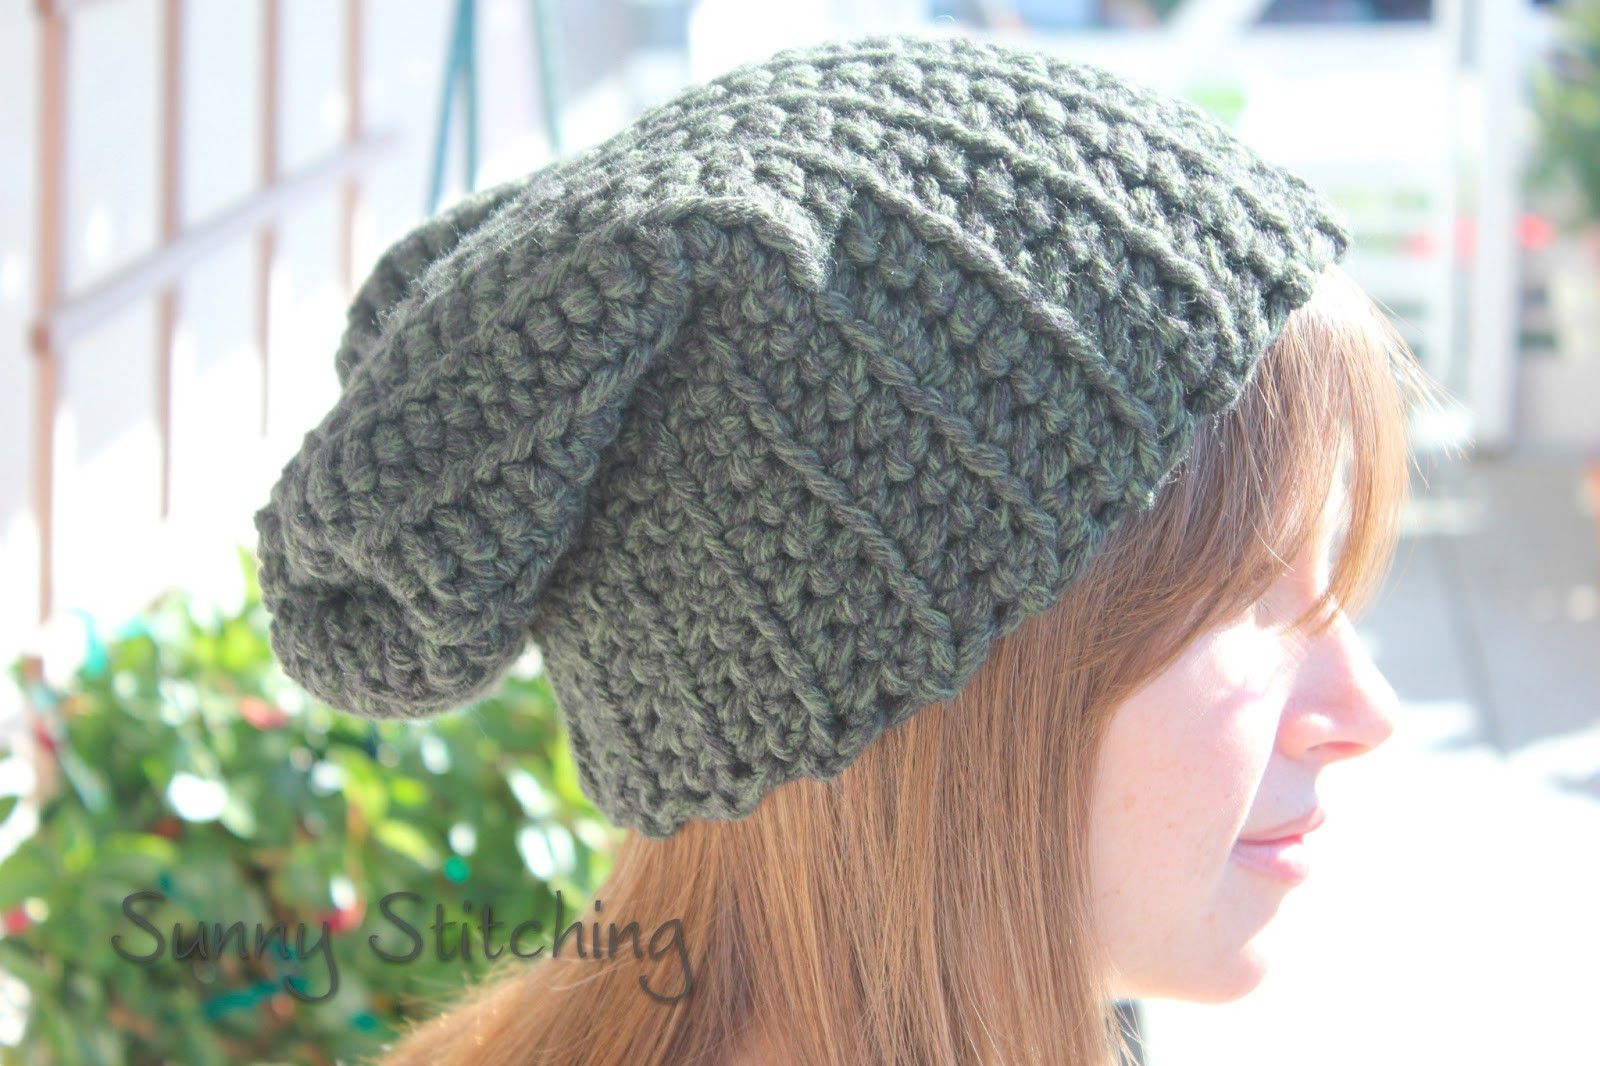 Free Crochet Hats Awesome Sunny Stitching Slouchy Hat Crochet Pattern Of Incredible 43 Photos Free Crochet Hats